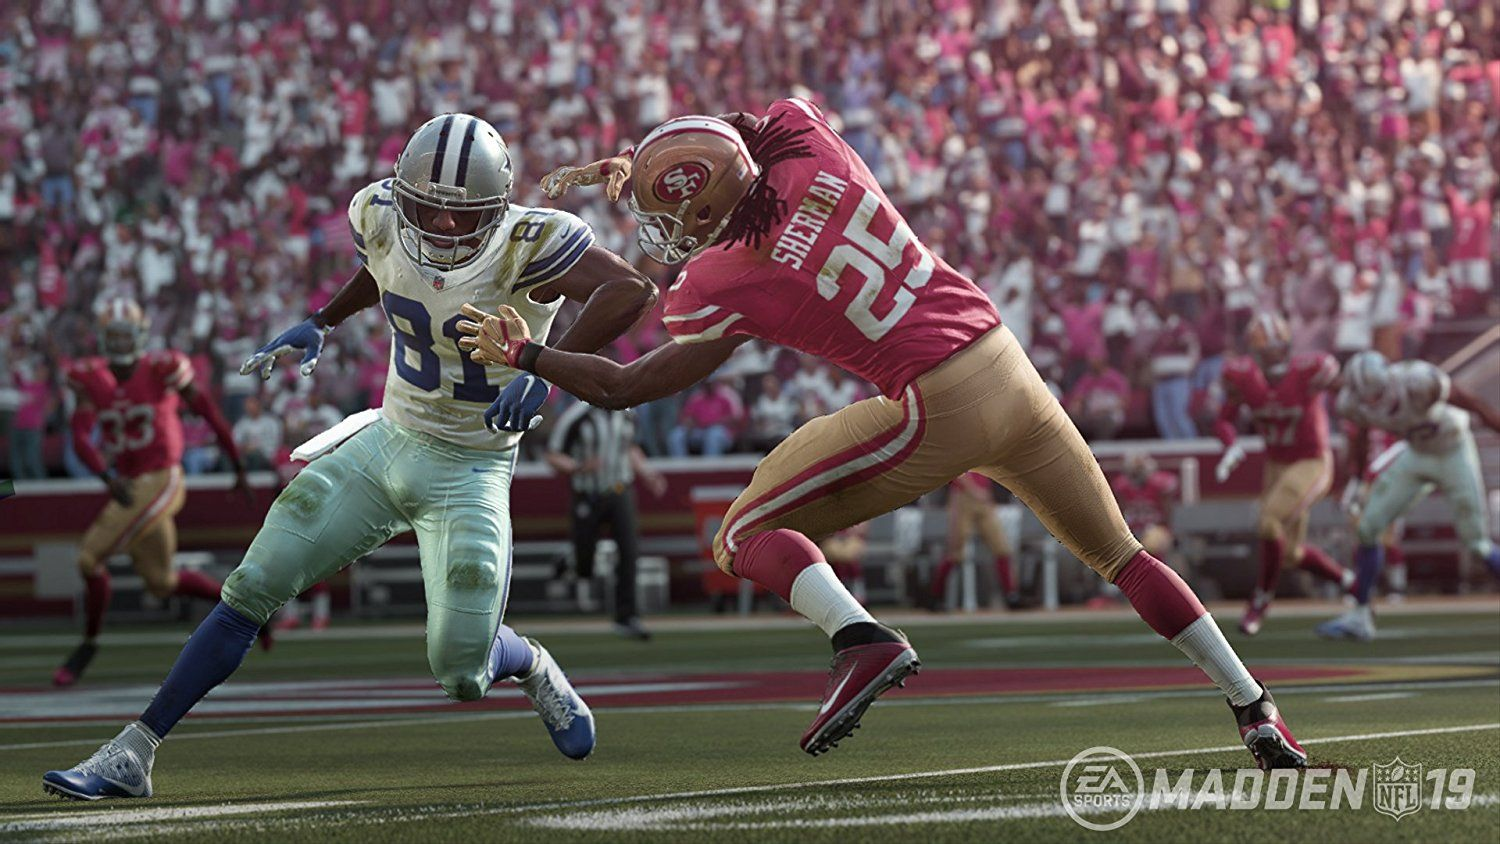 Madden NFL 19 (PS4) - 5